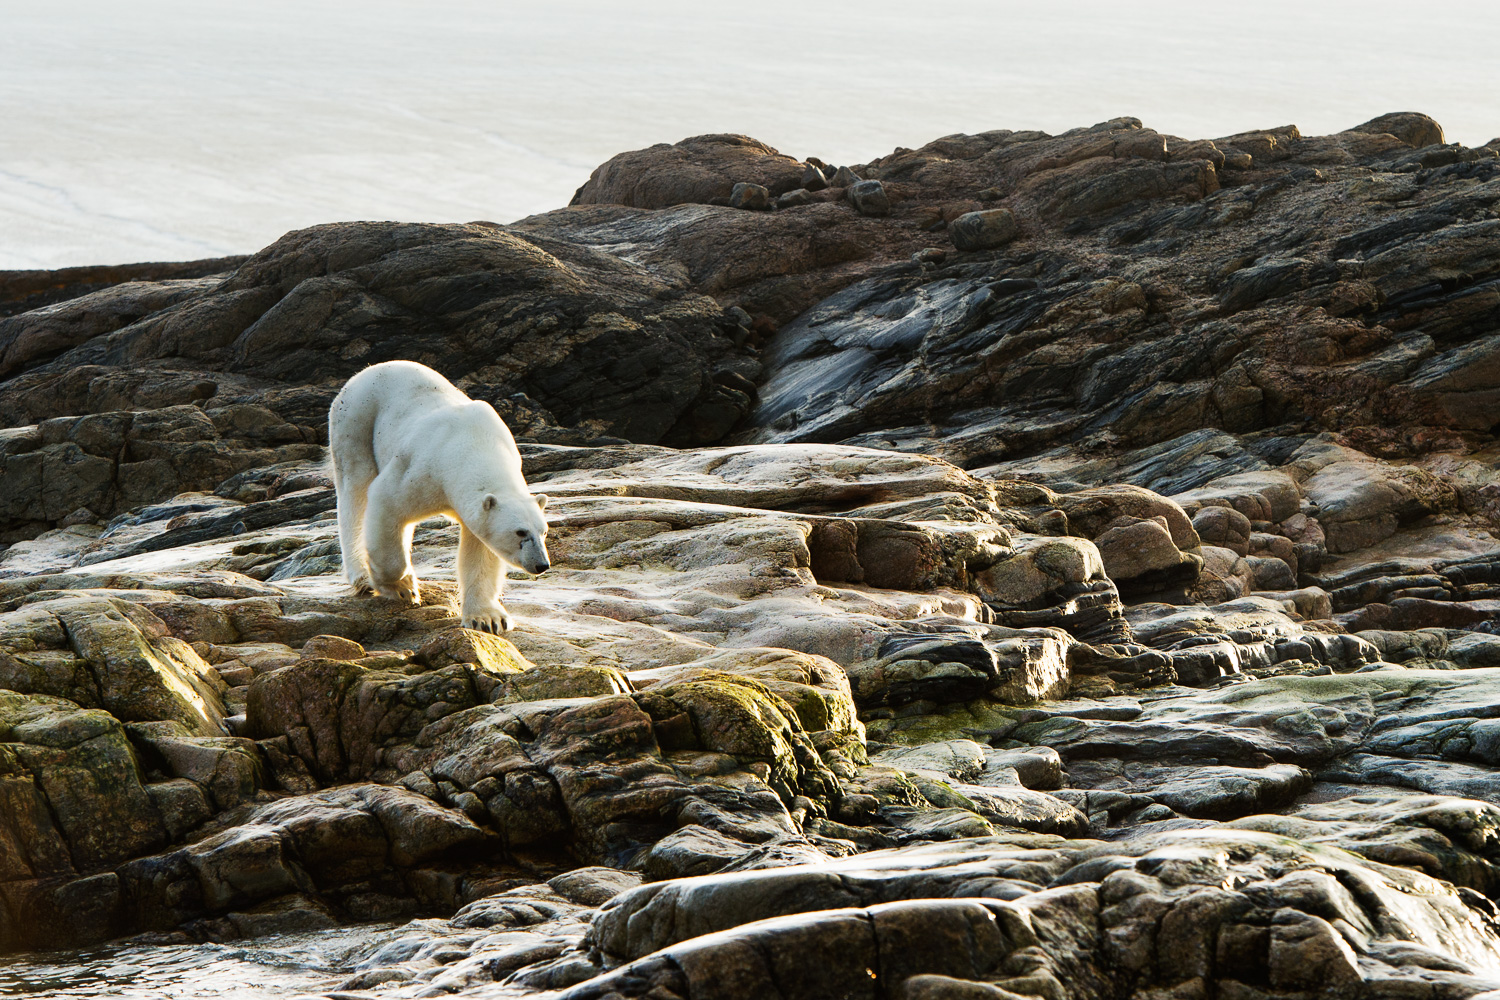 Copyright: Polar Bears & Humans project / Ole J Liodden